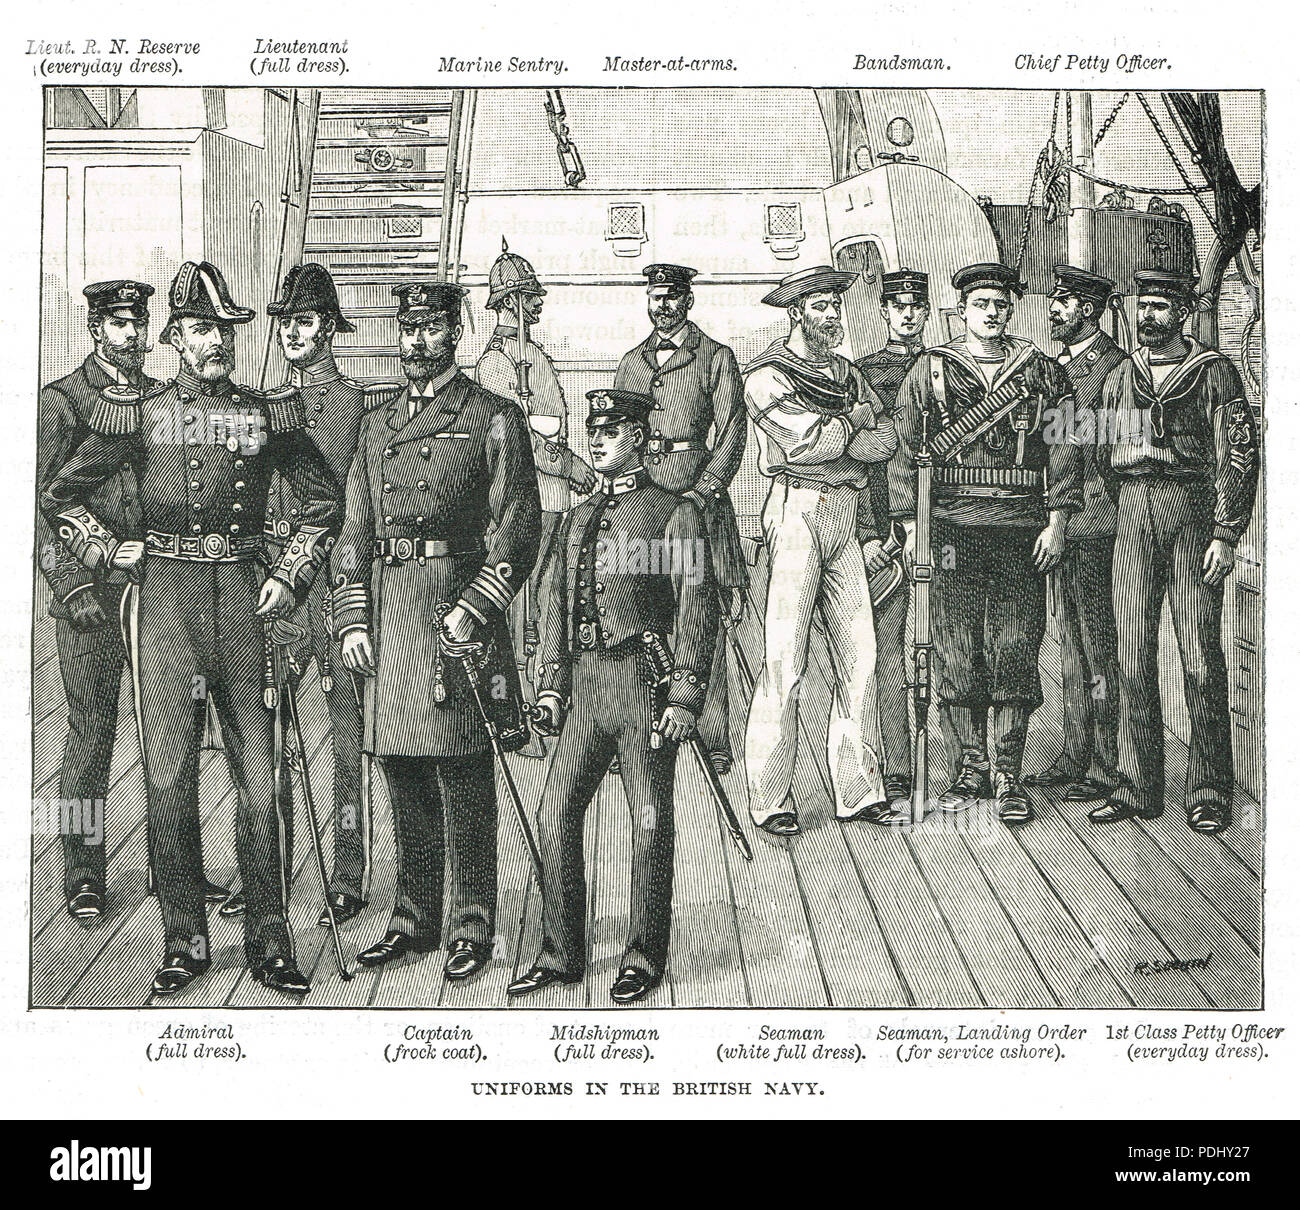 Uniforms of the British Navy in the 19th century - Stock Image